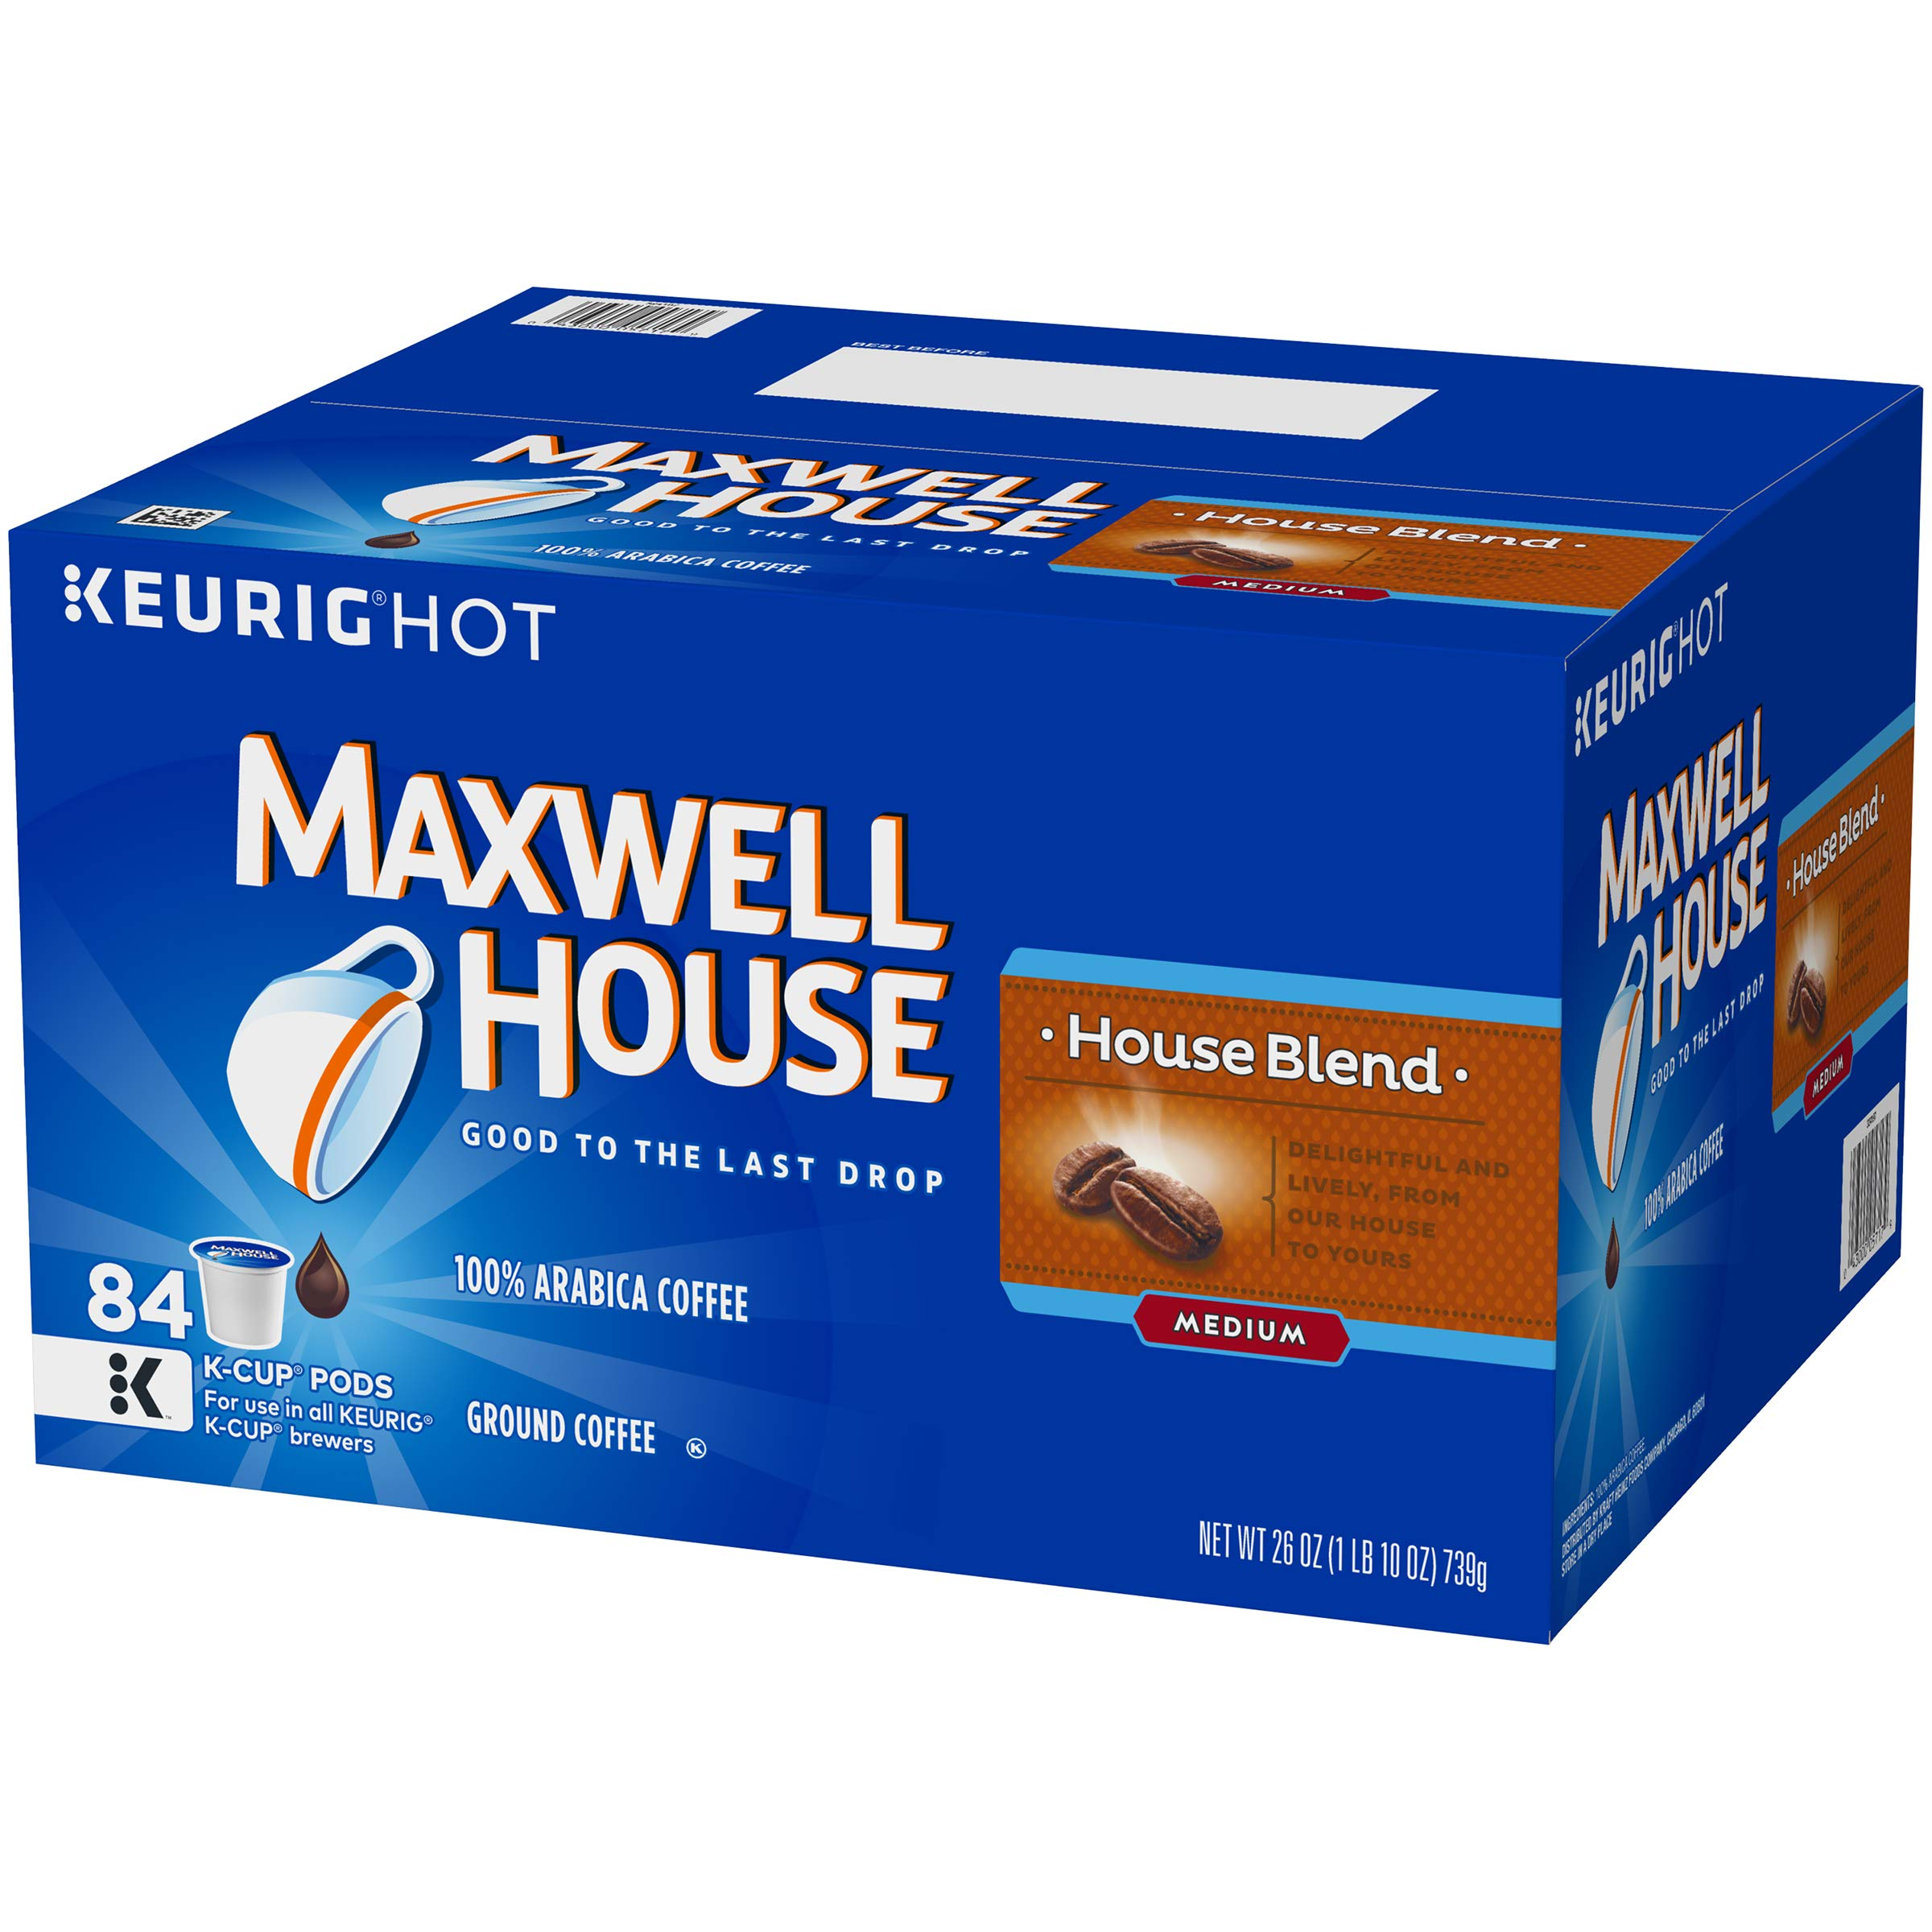 Maxwell House House Blend K-Cup Coffee Pods, 84 ct Box by MAXWELL HOUSE (Image #5)